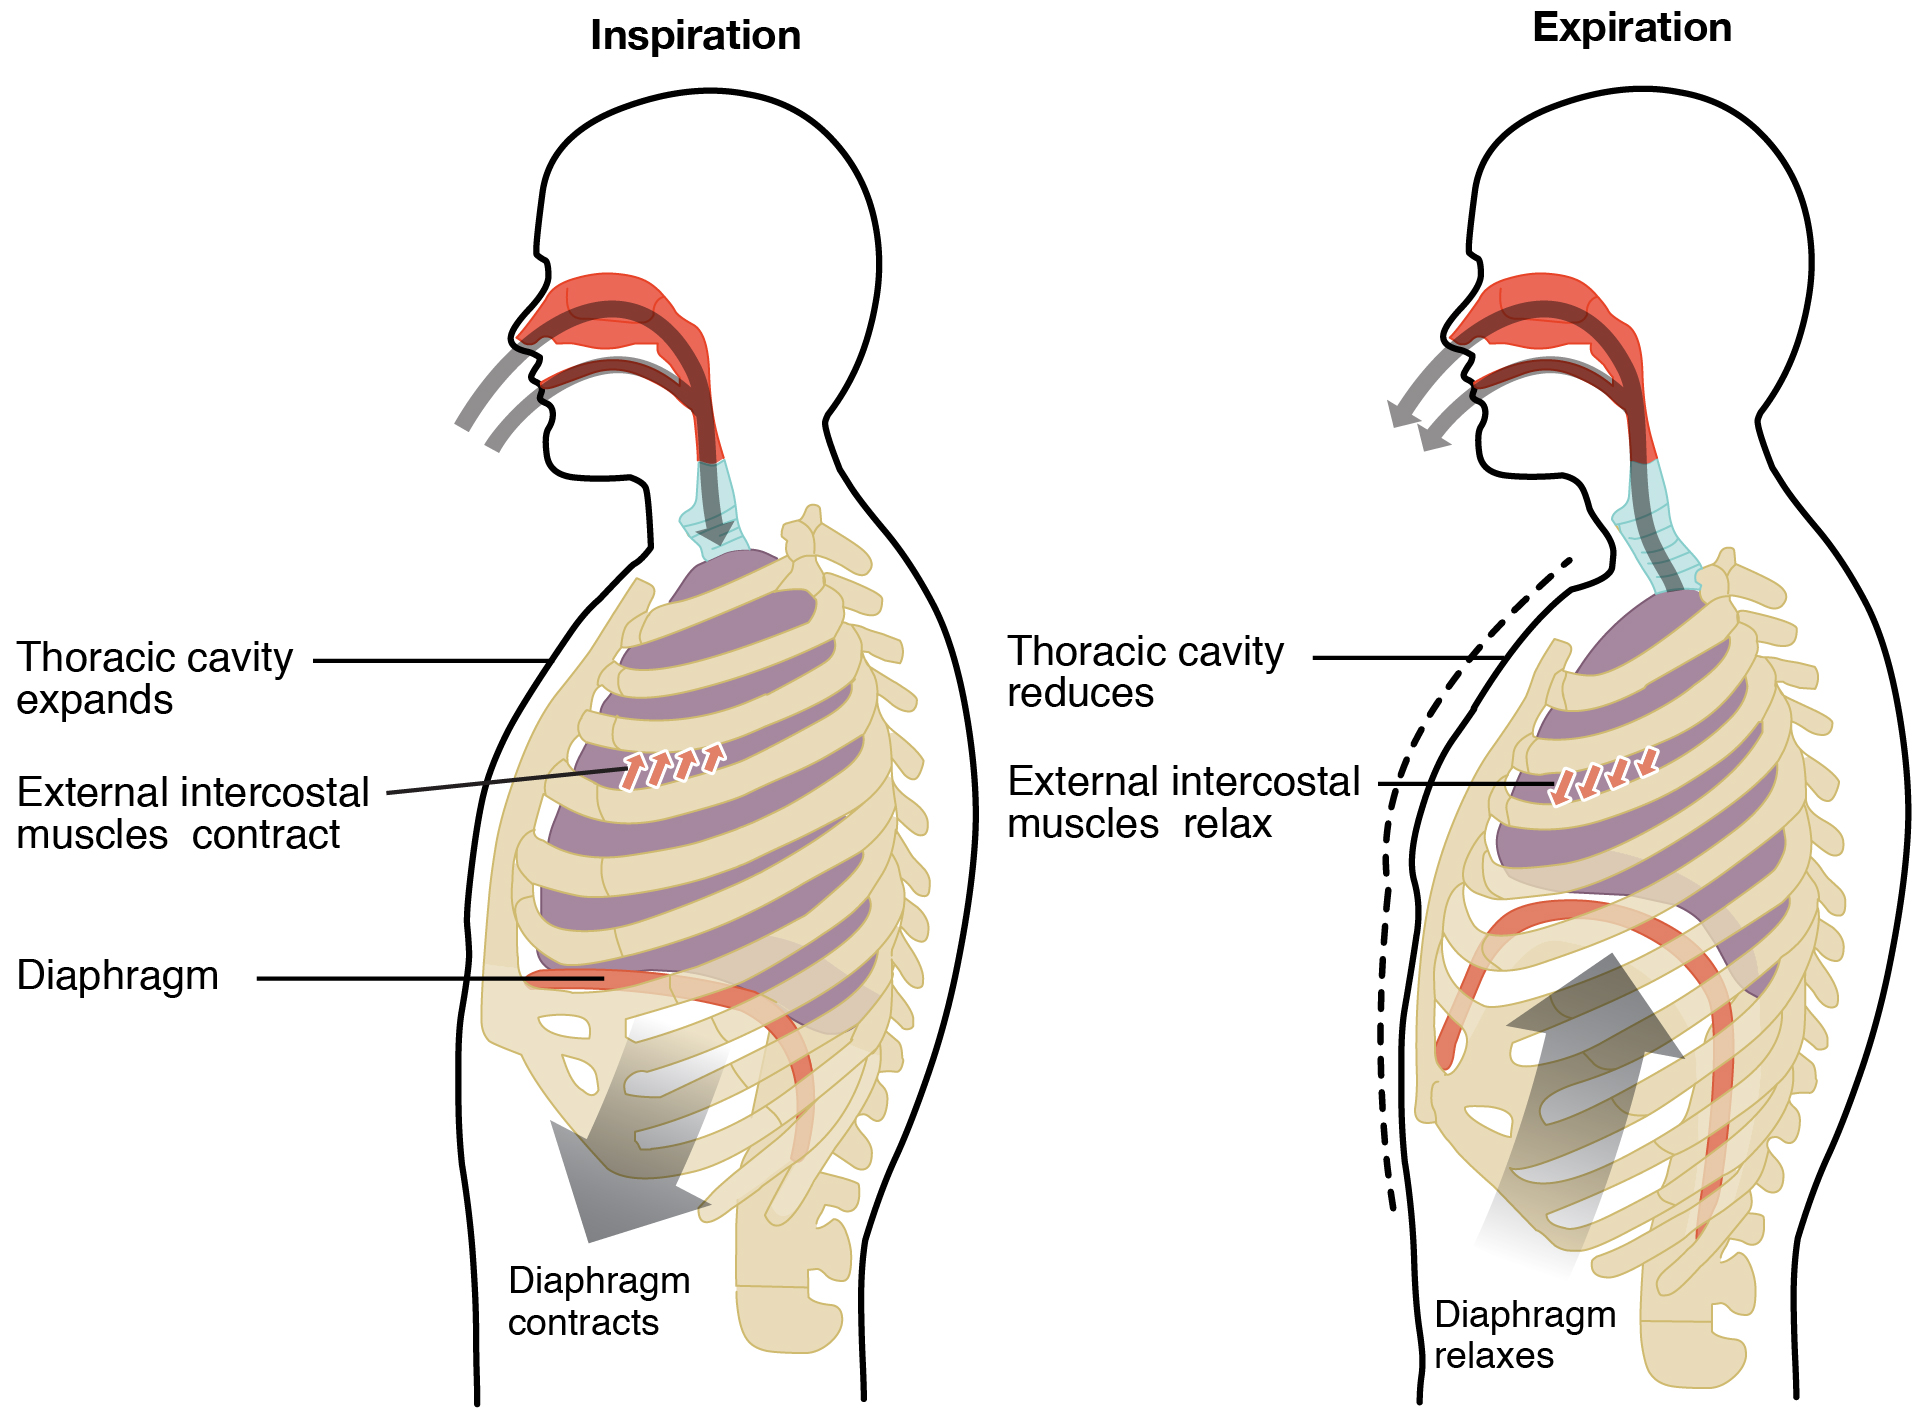 the left panel of this image shows a person inhaling air and the location  of the